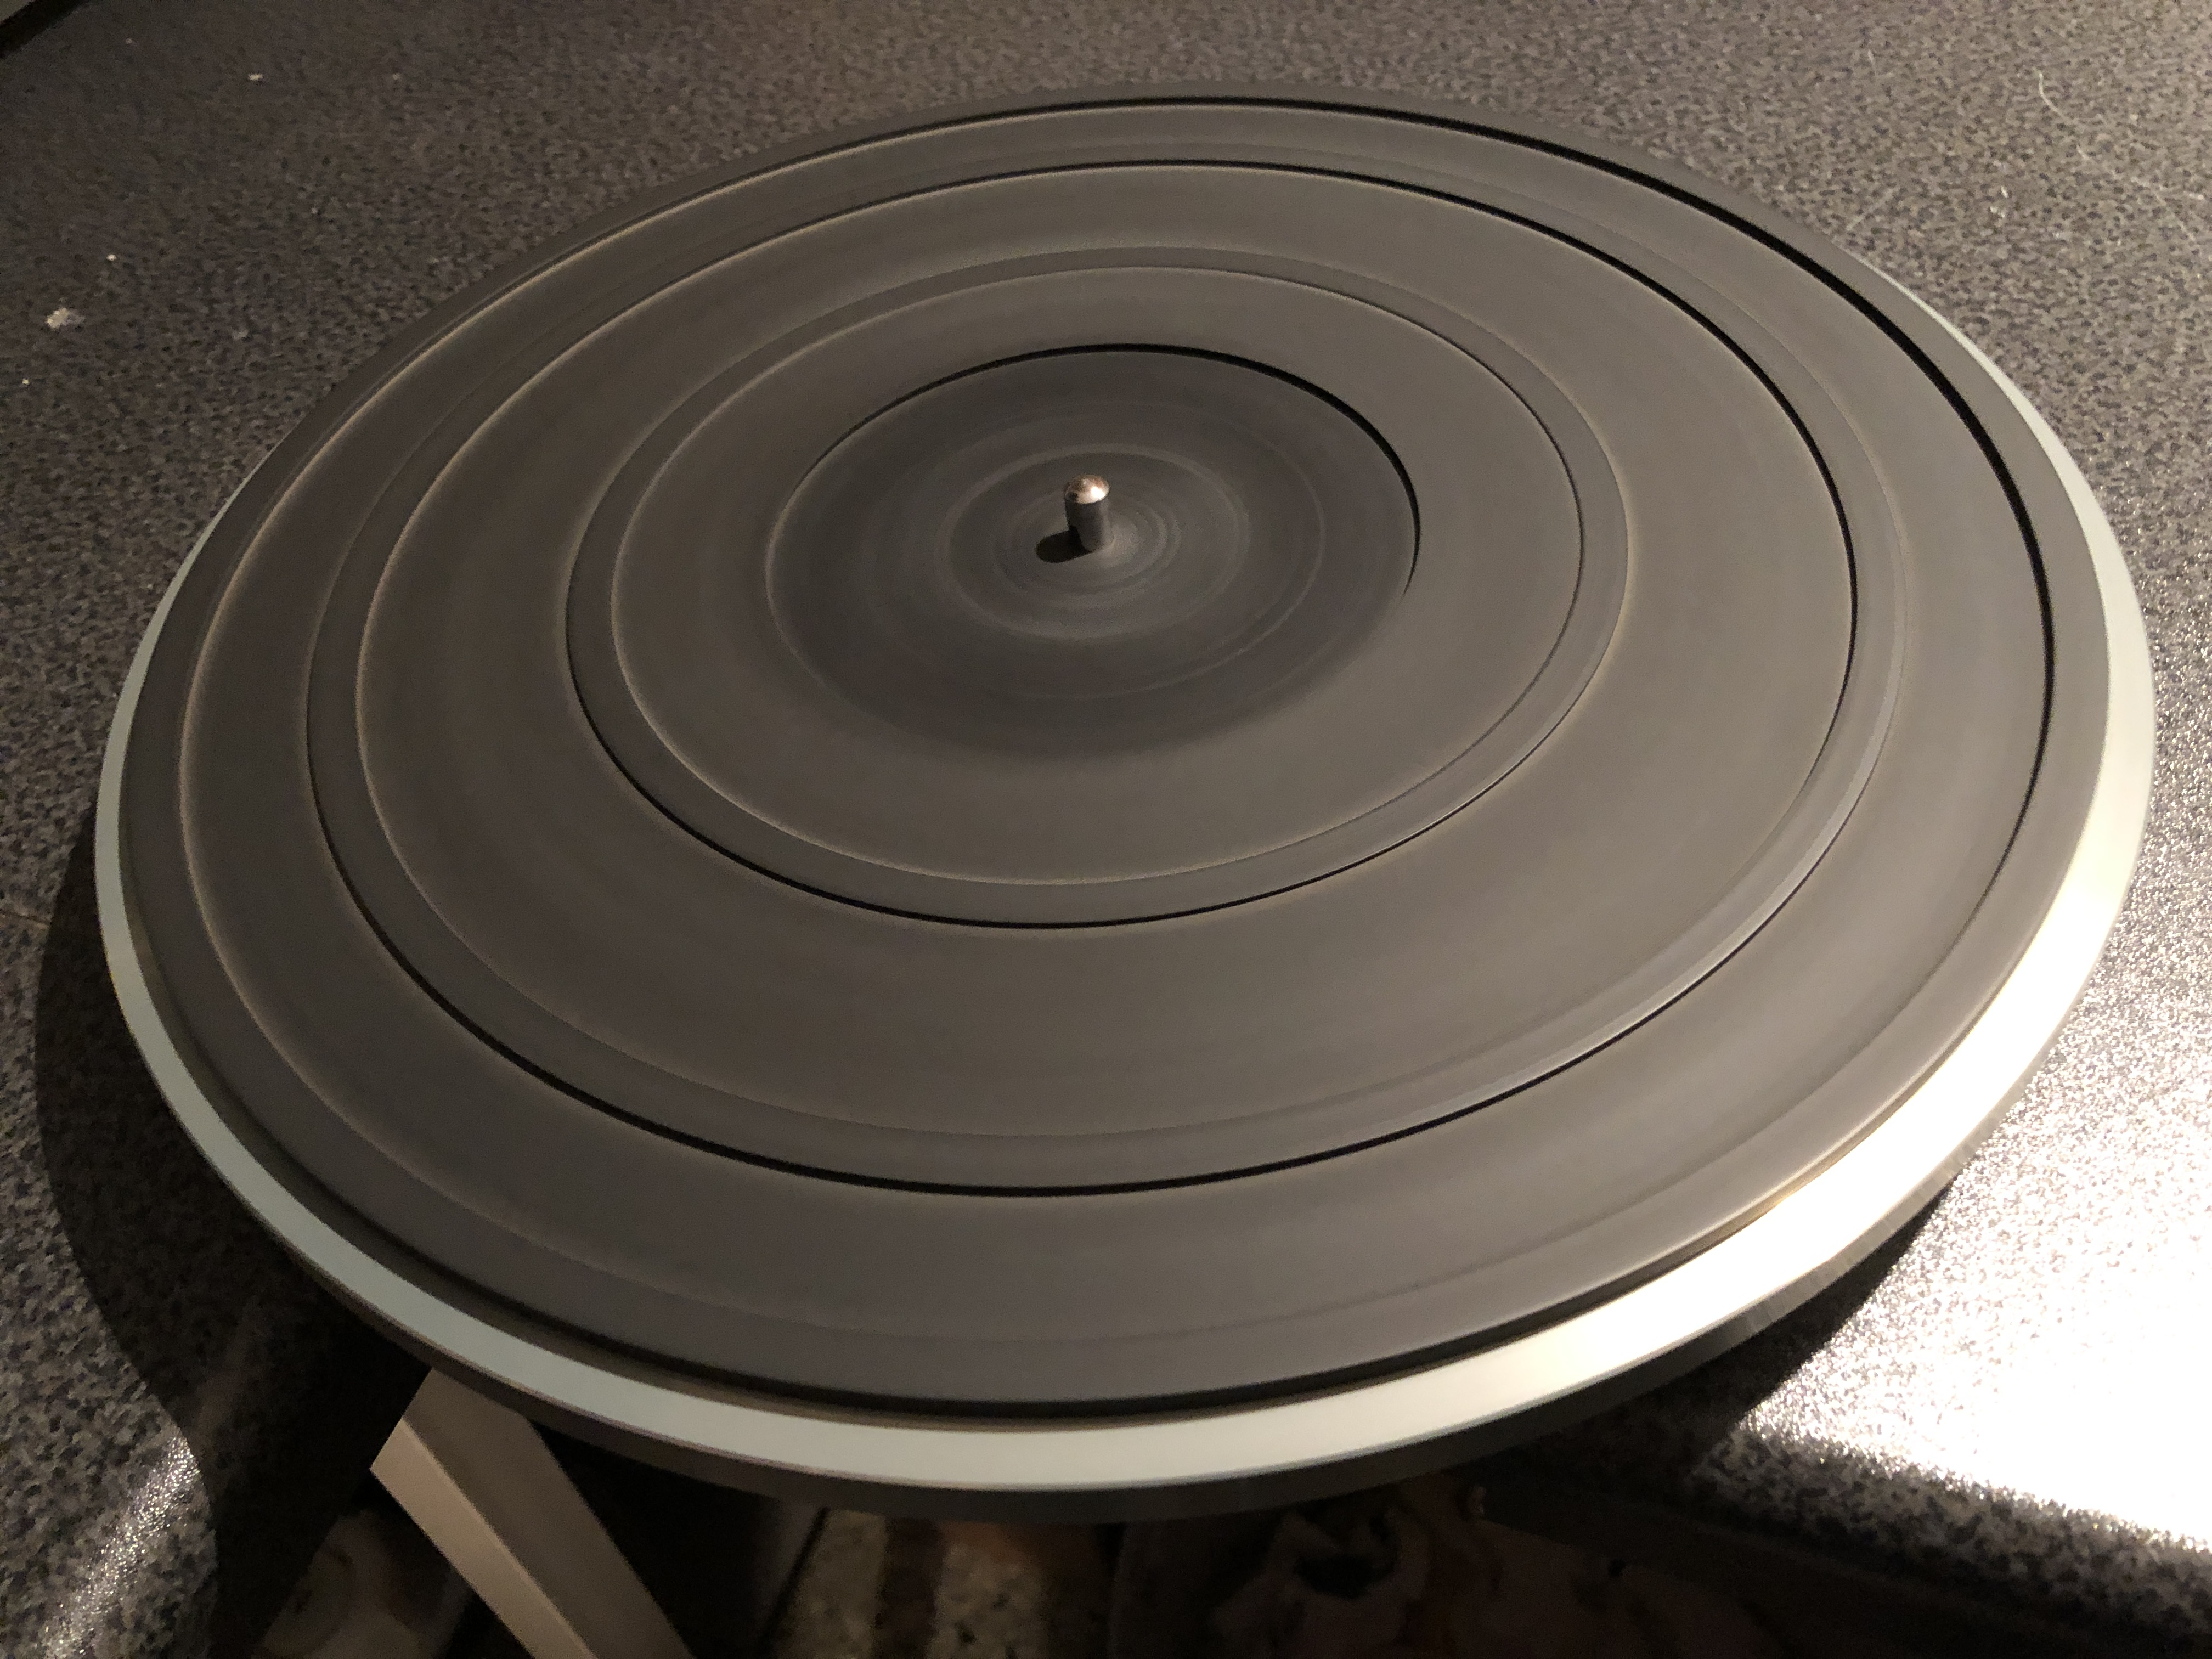 The built-in turntable